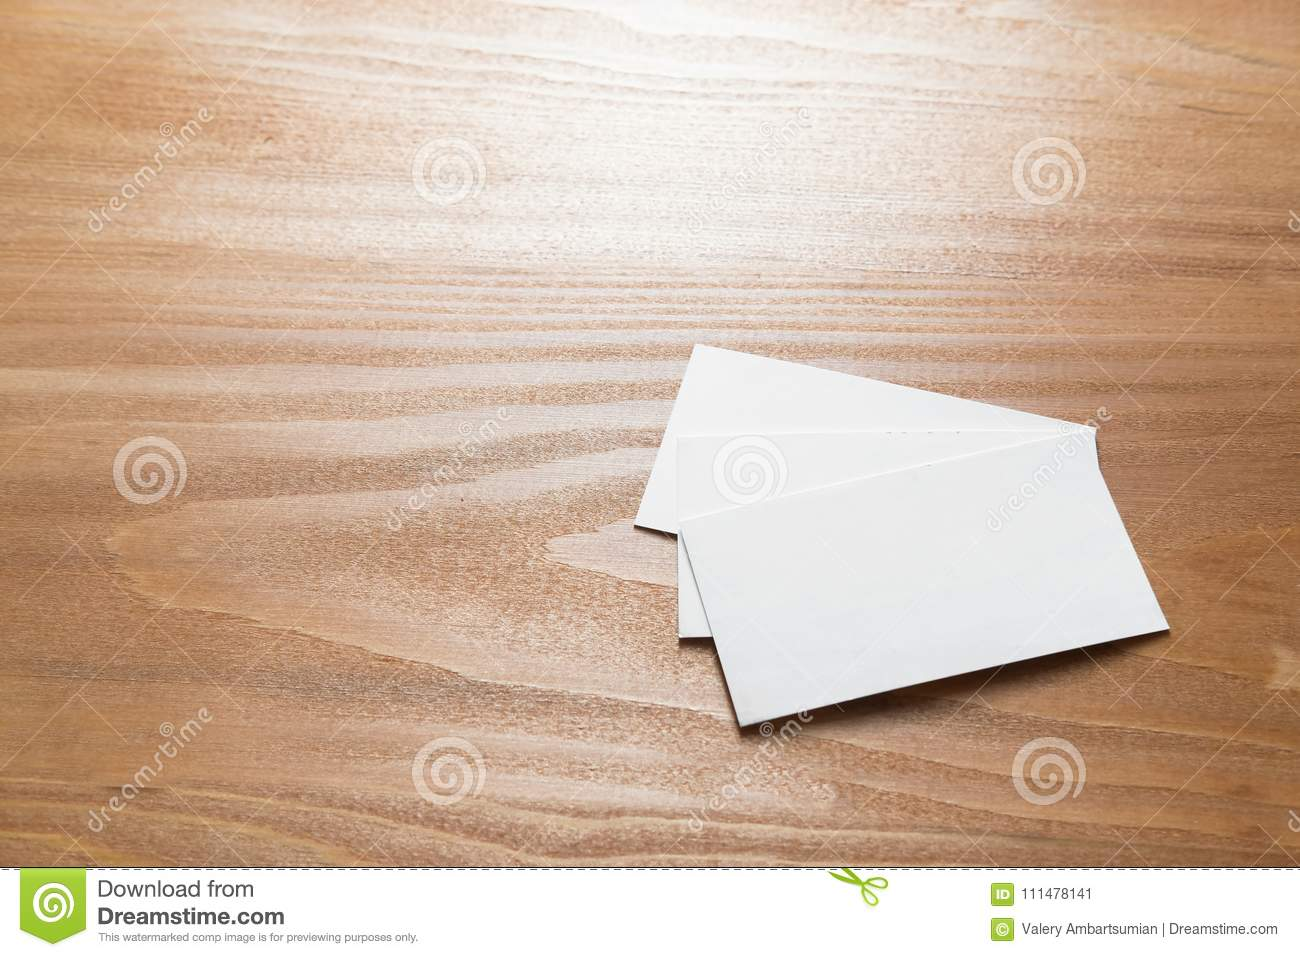 Few clean white business cards with space for text